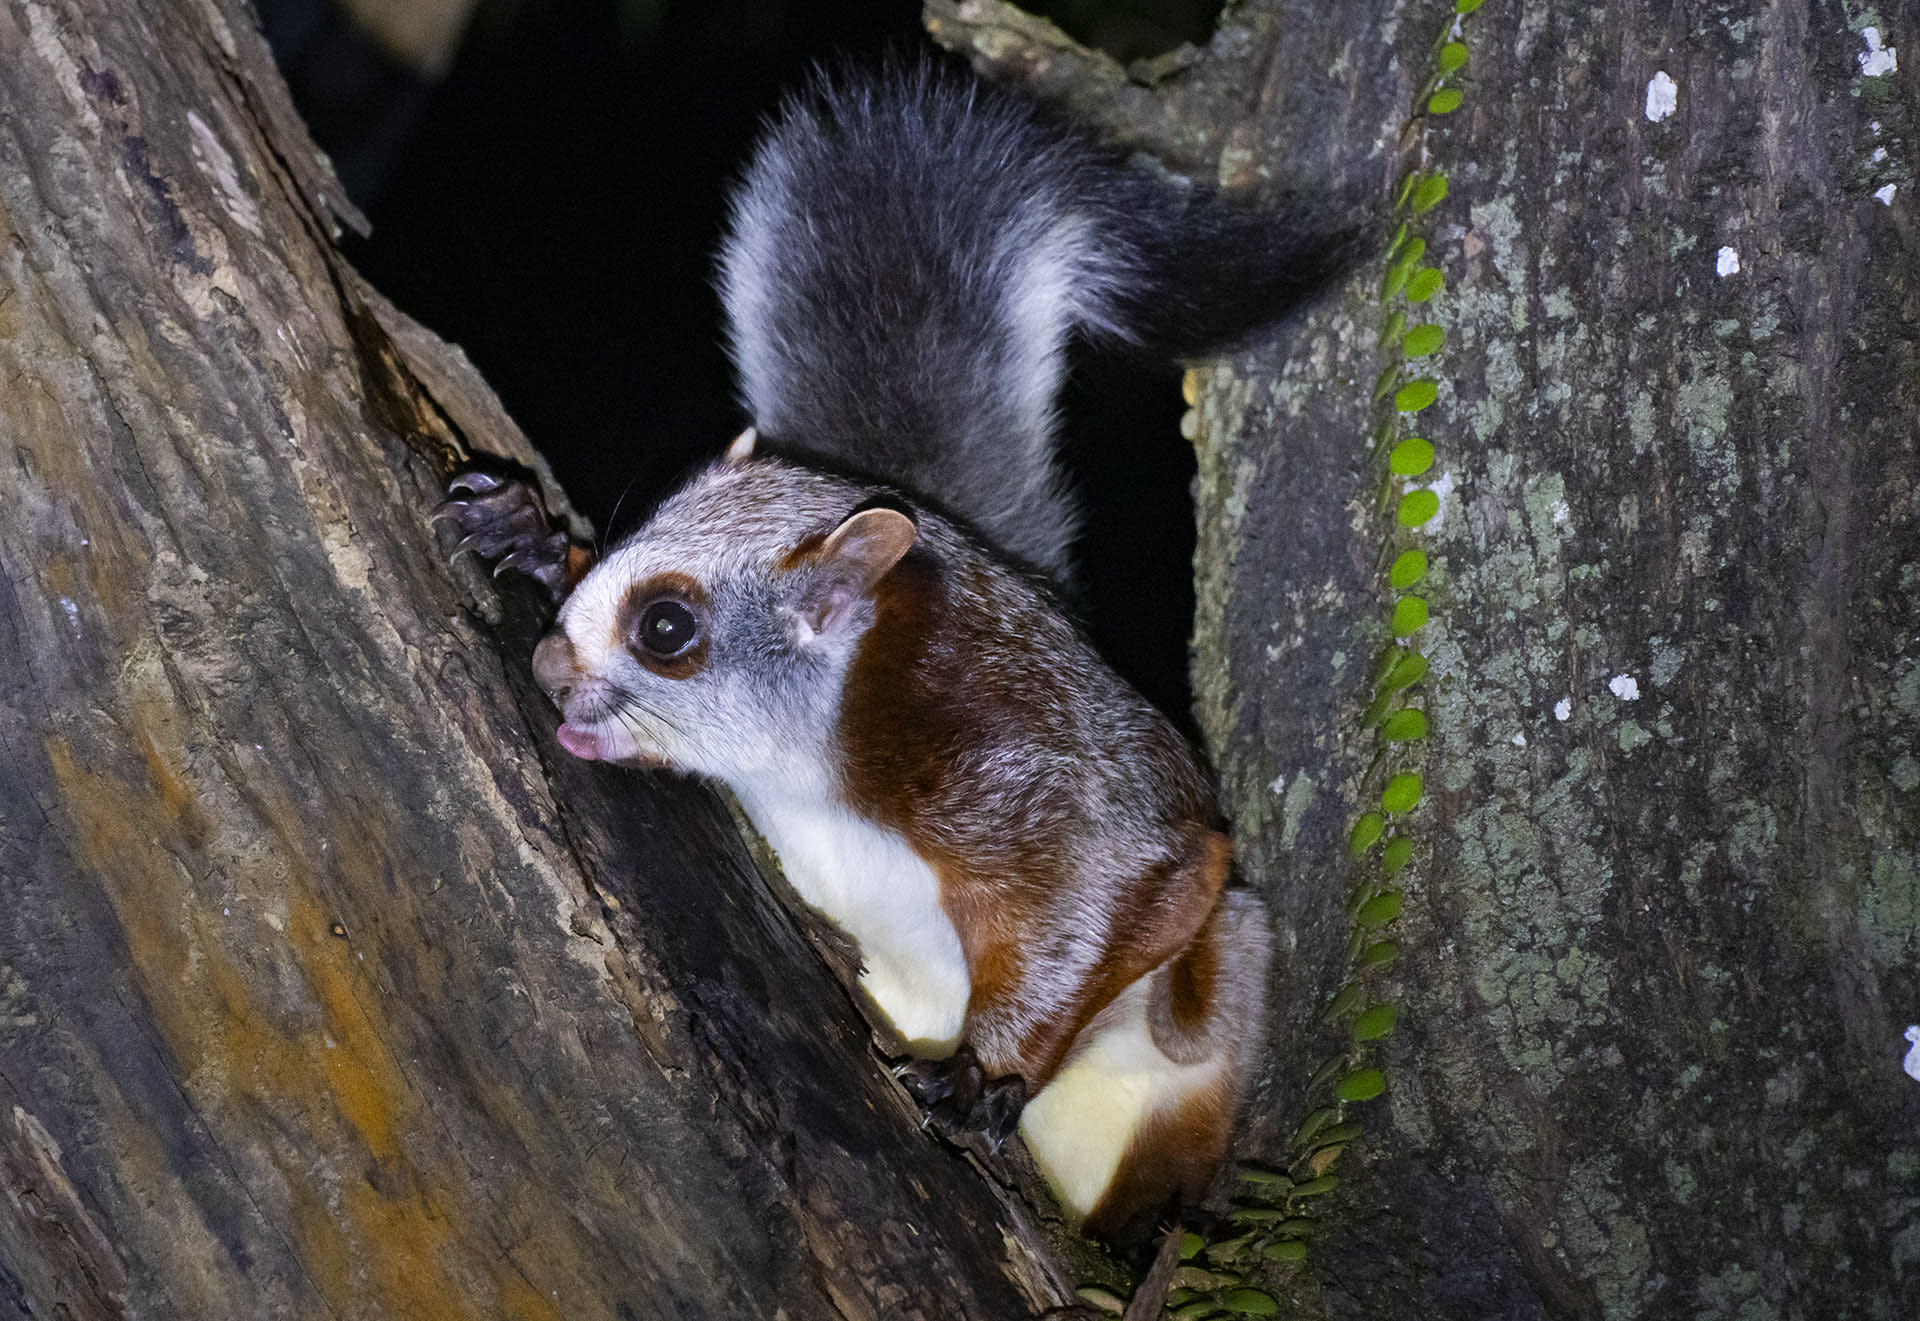 Red giant squirrels spend their days climbing and gliding through the forest canopy. They feed on largely leaves and berries, and rarely descend to ground level. Occasionally, the squirrels also eat bits of tree bark and sap, as is pictured here.